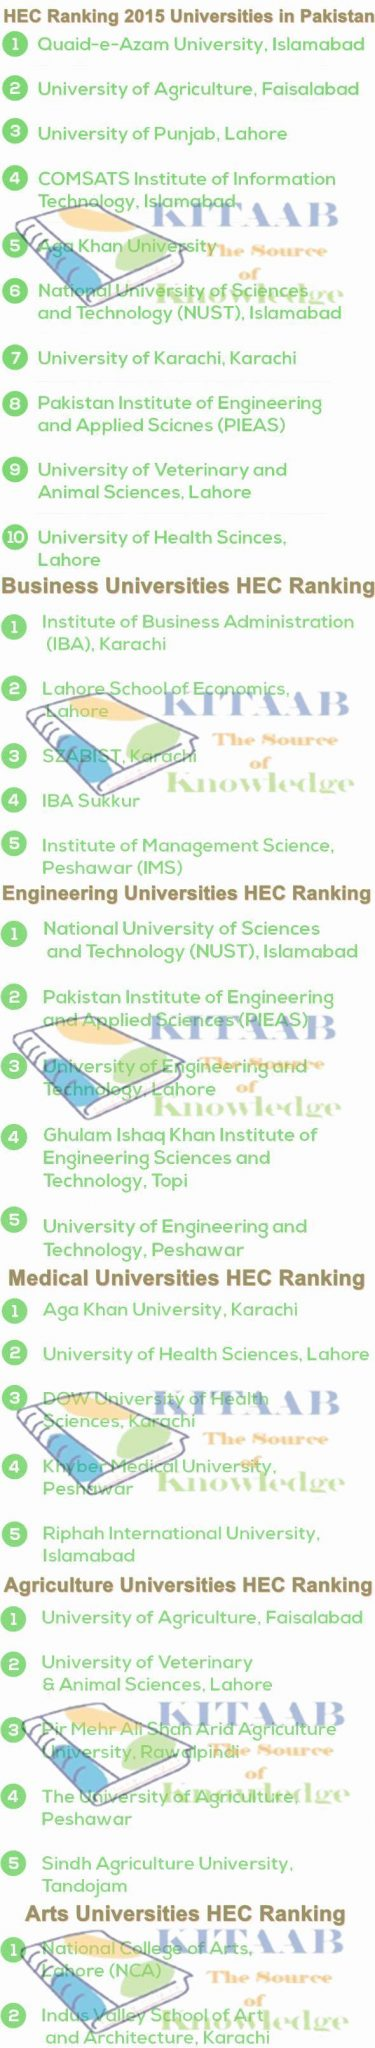 HEC Ranking 2015 Universities in Pakistan Punjab KPK Sindh Balochistan Gilgit Baltistan